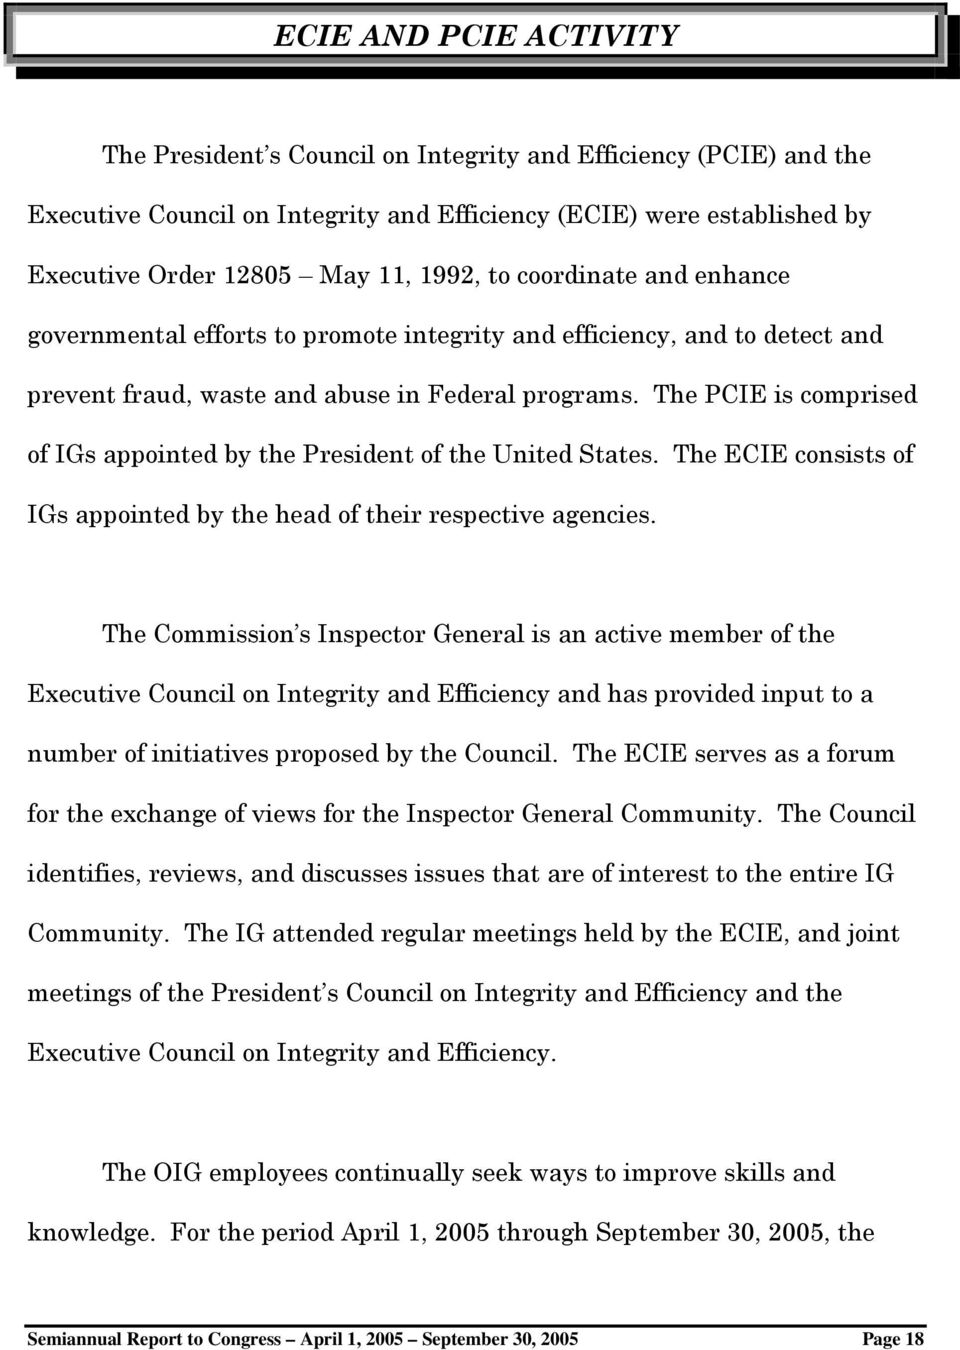 The PCIE is comprised of IGs appointed by the President of the United States. The ECIE consists of IGs appointed by the head of their respective agencies.